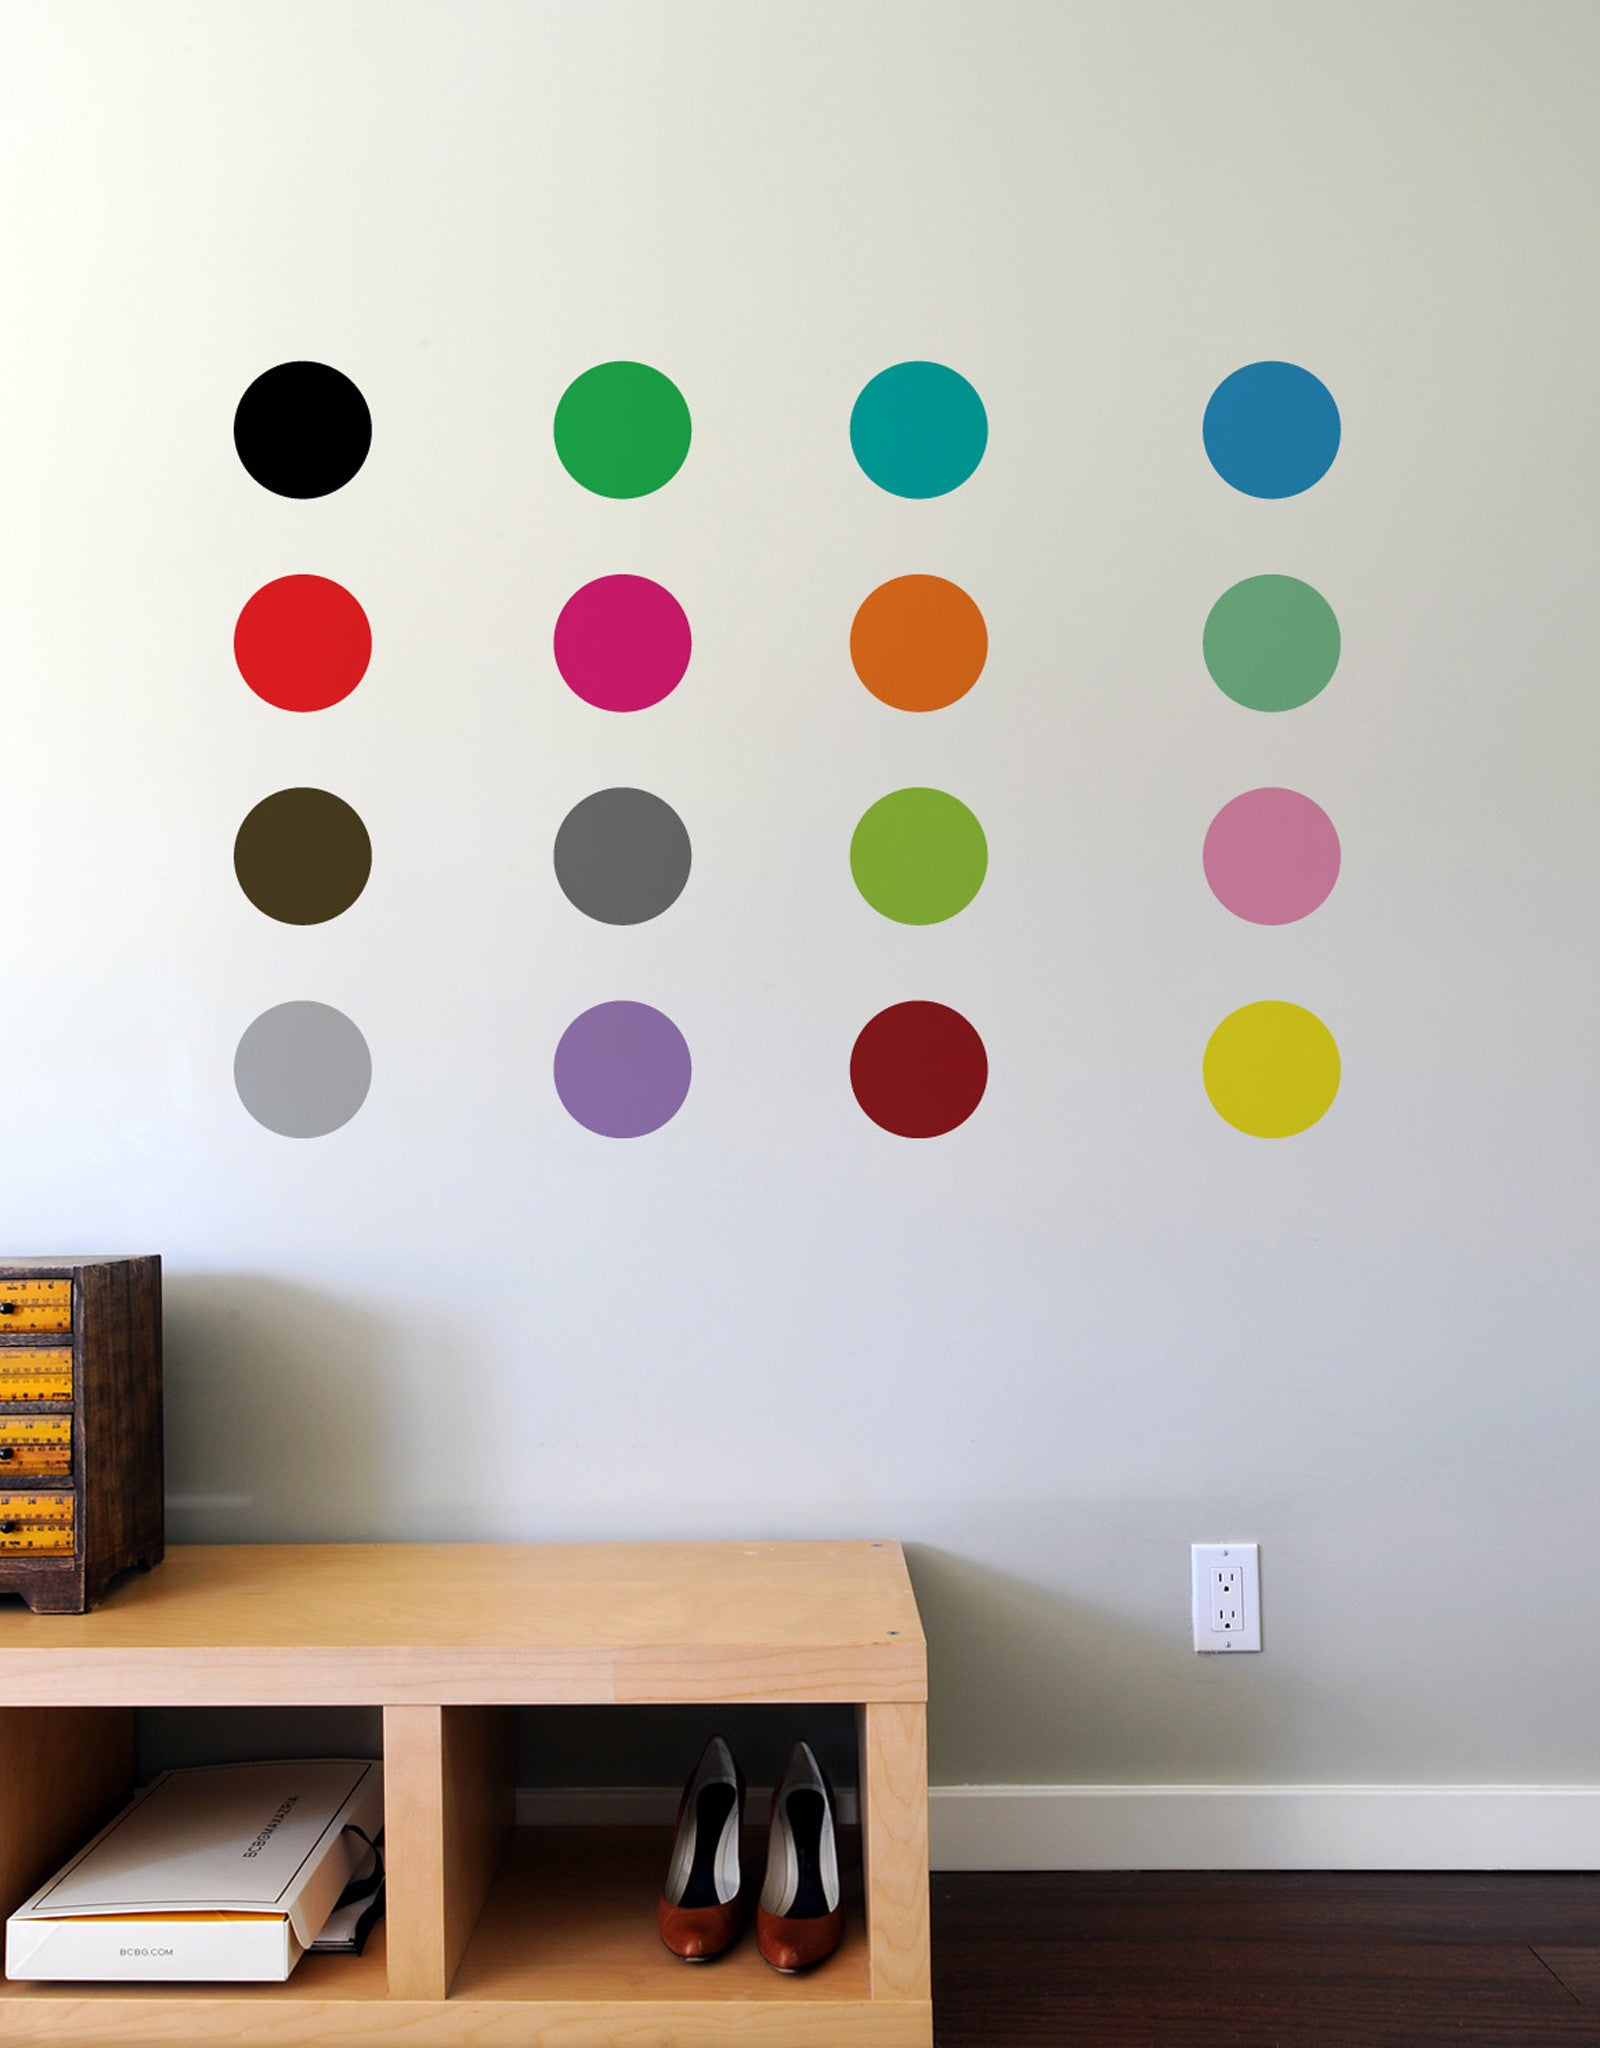 Sweet 16 · Sweet 16 & Colorful Polka Dot Wall Decals | Blik Sweet 16